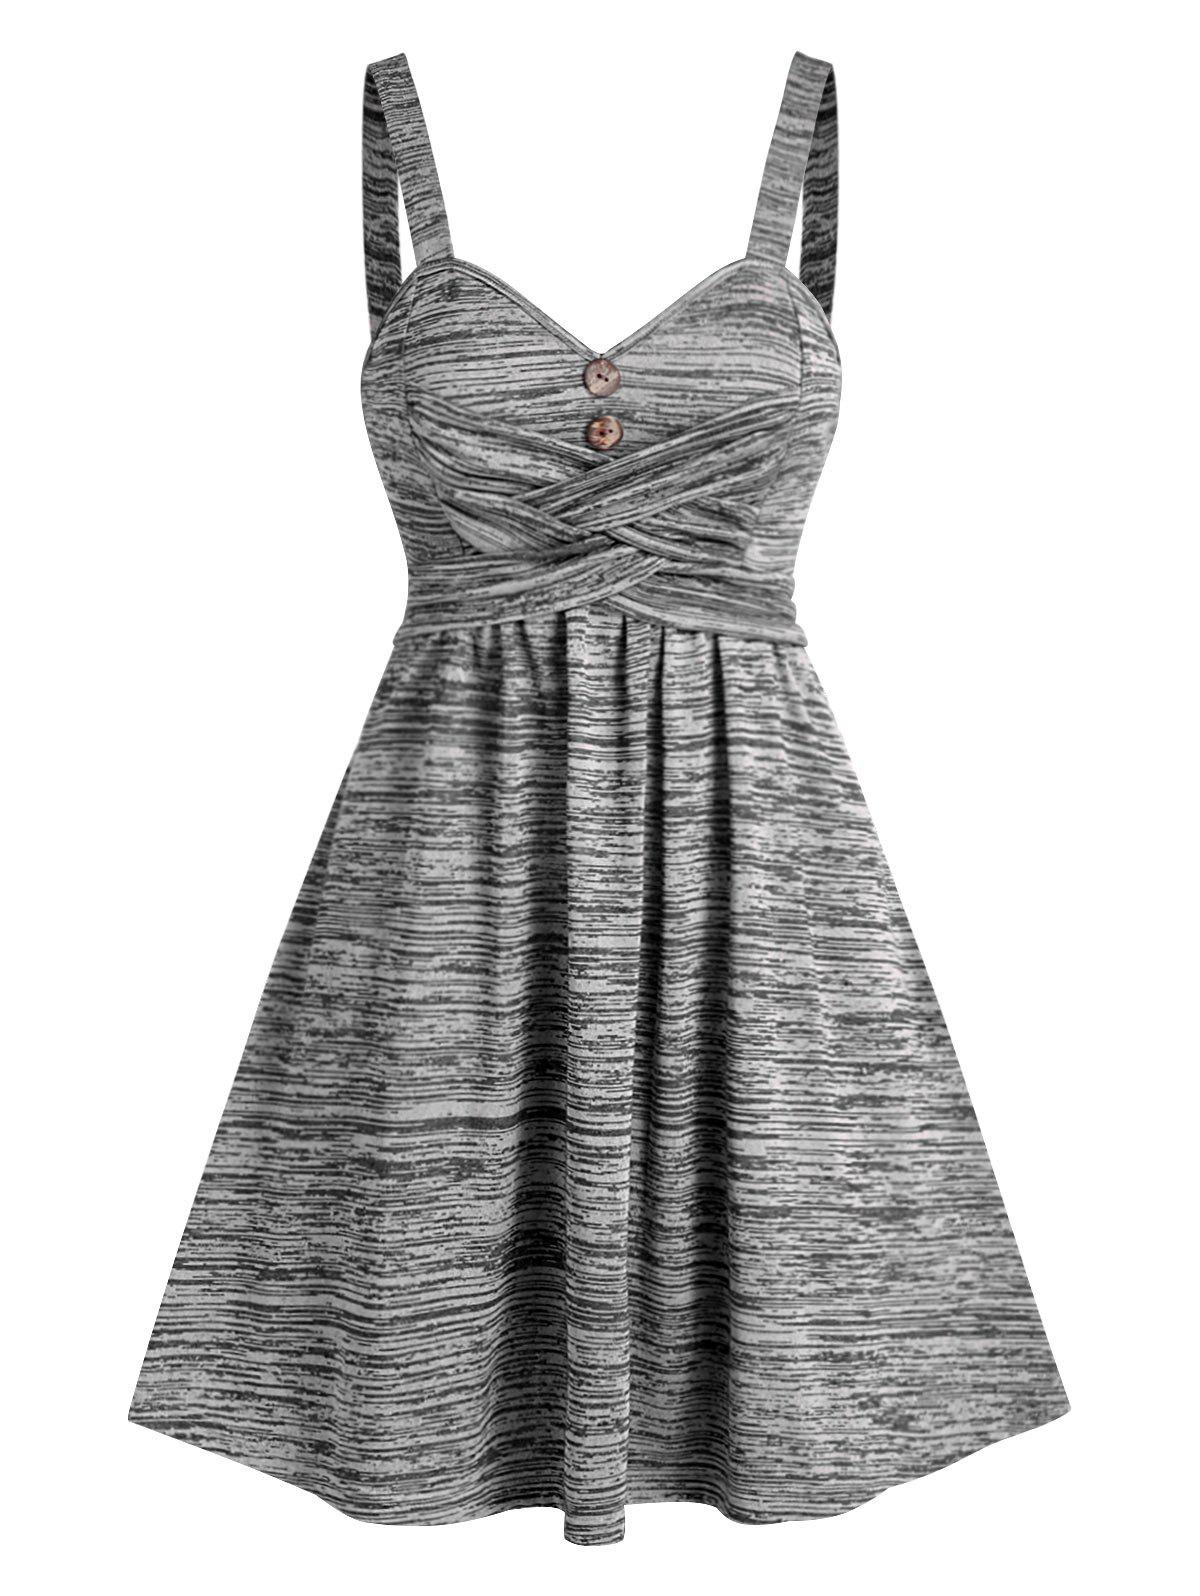 Space Dye Crisscross Cami A Line Dress - GRAY XL